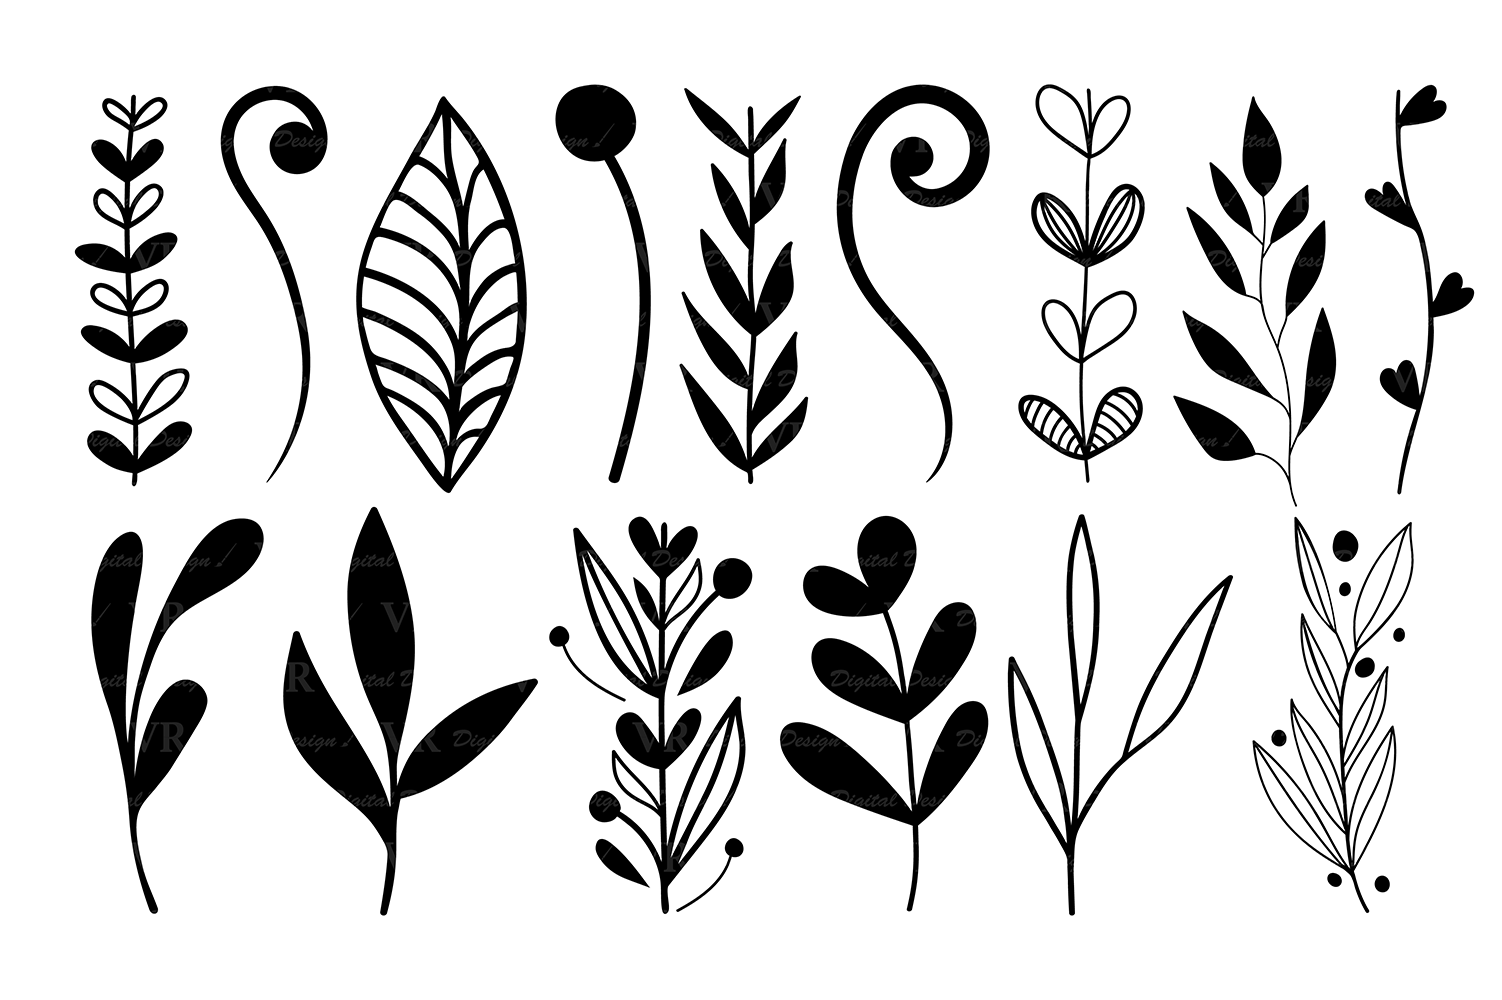 Wreaths Clipart Hand Drawn Black Design Elements Digital Wreath